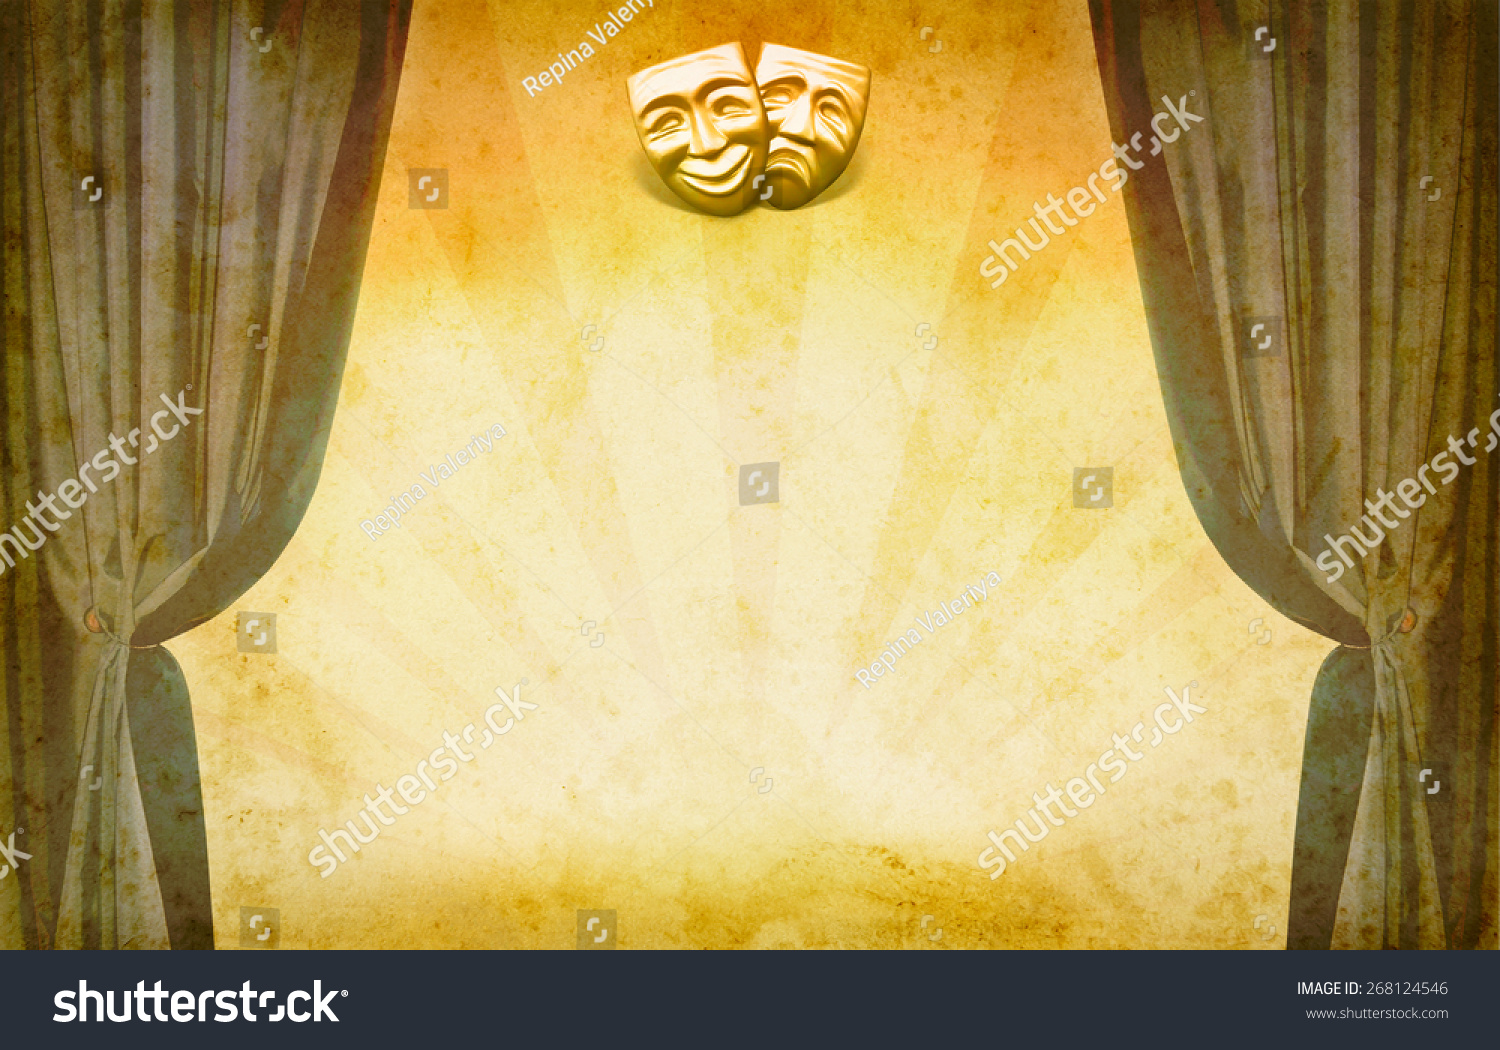 Theater Vintage Background Open Curtains Masks Stock Photo (Edit Now ...